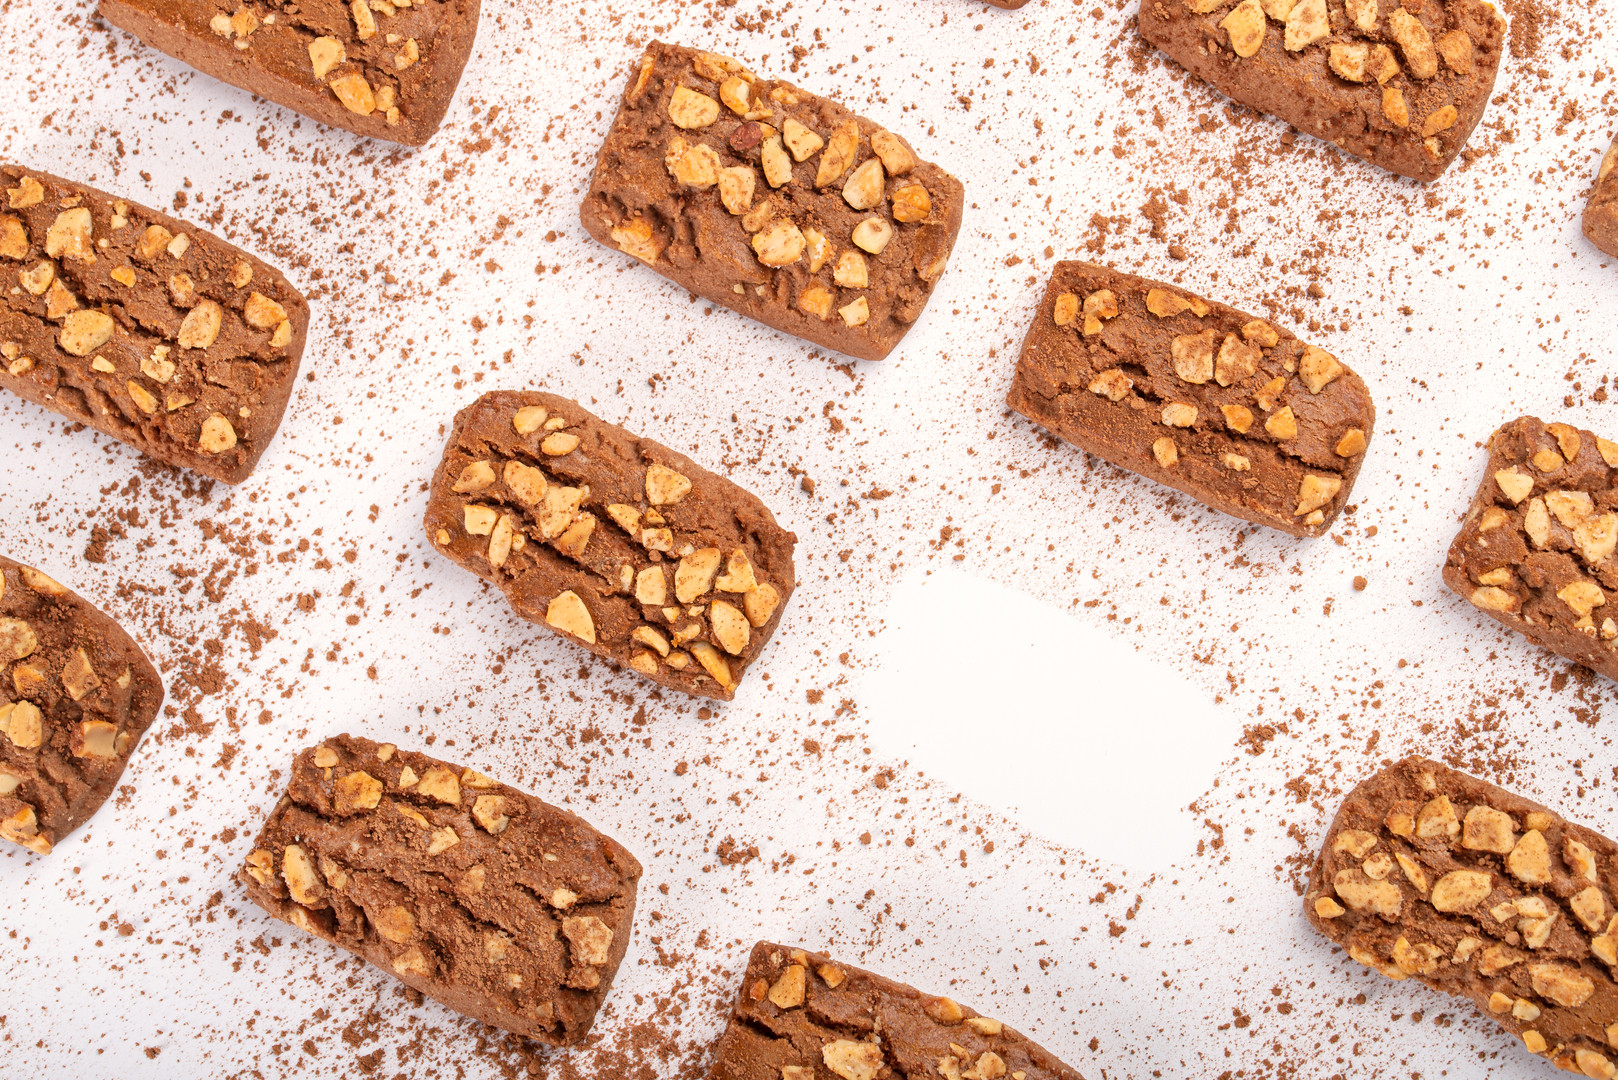 Walnut biscuit concept photography